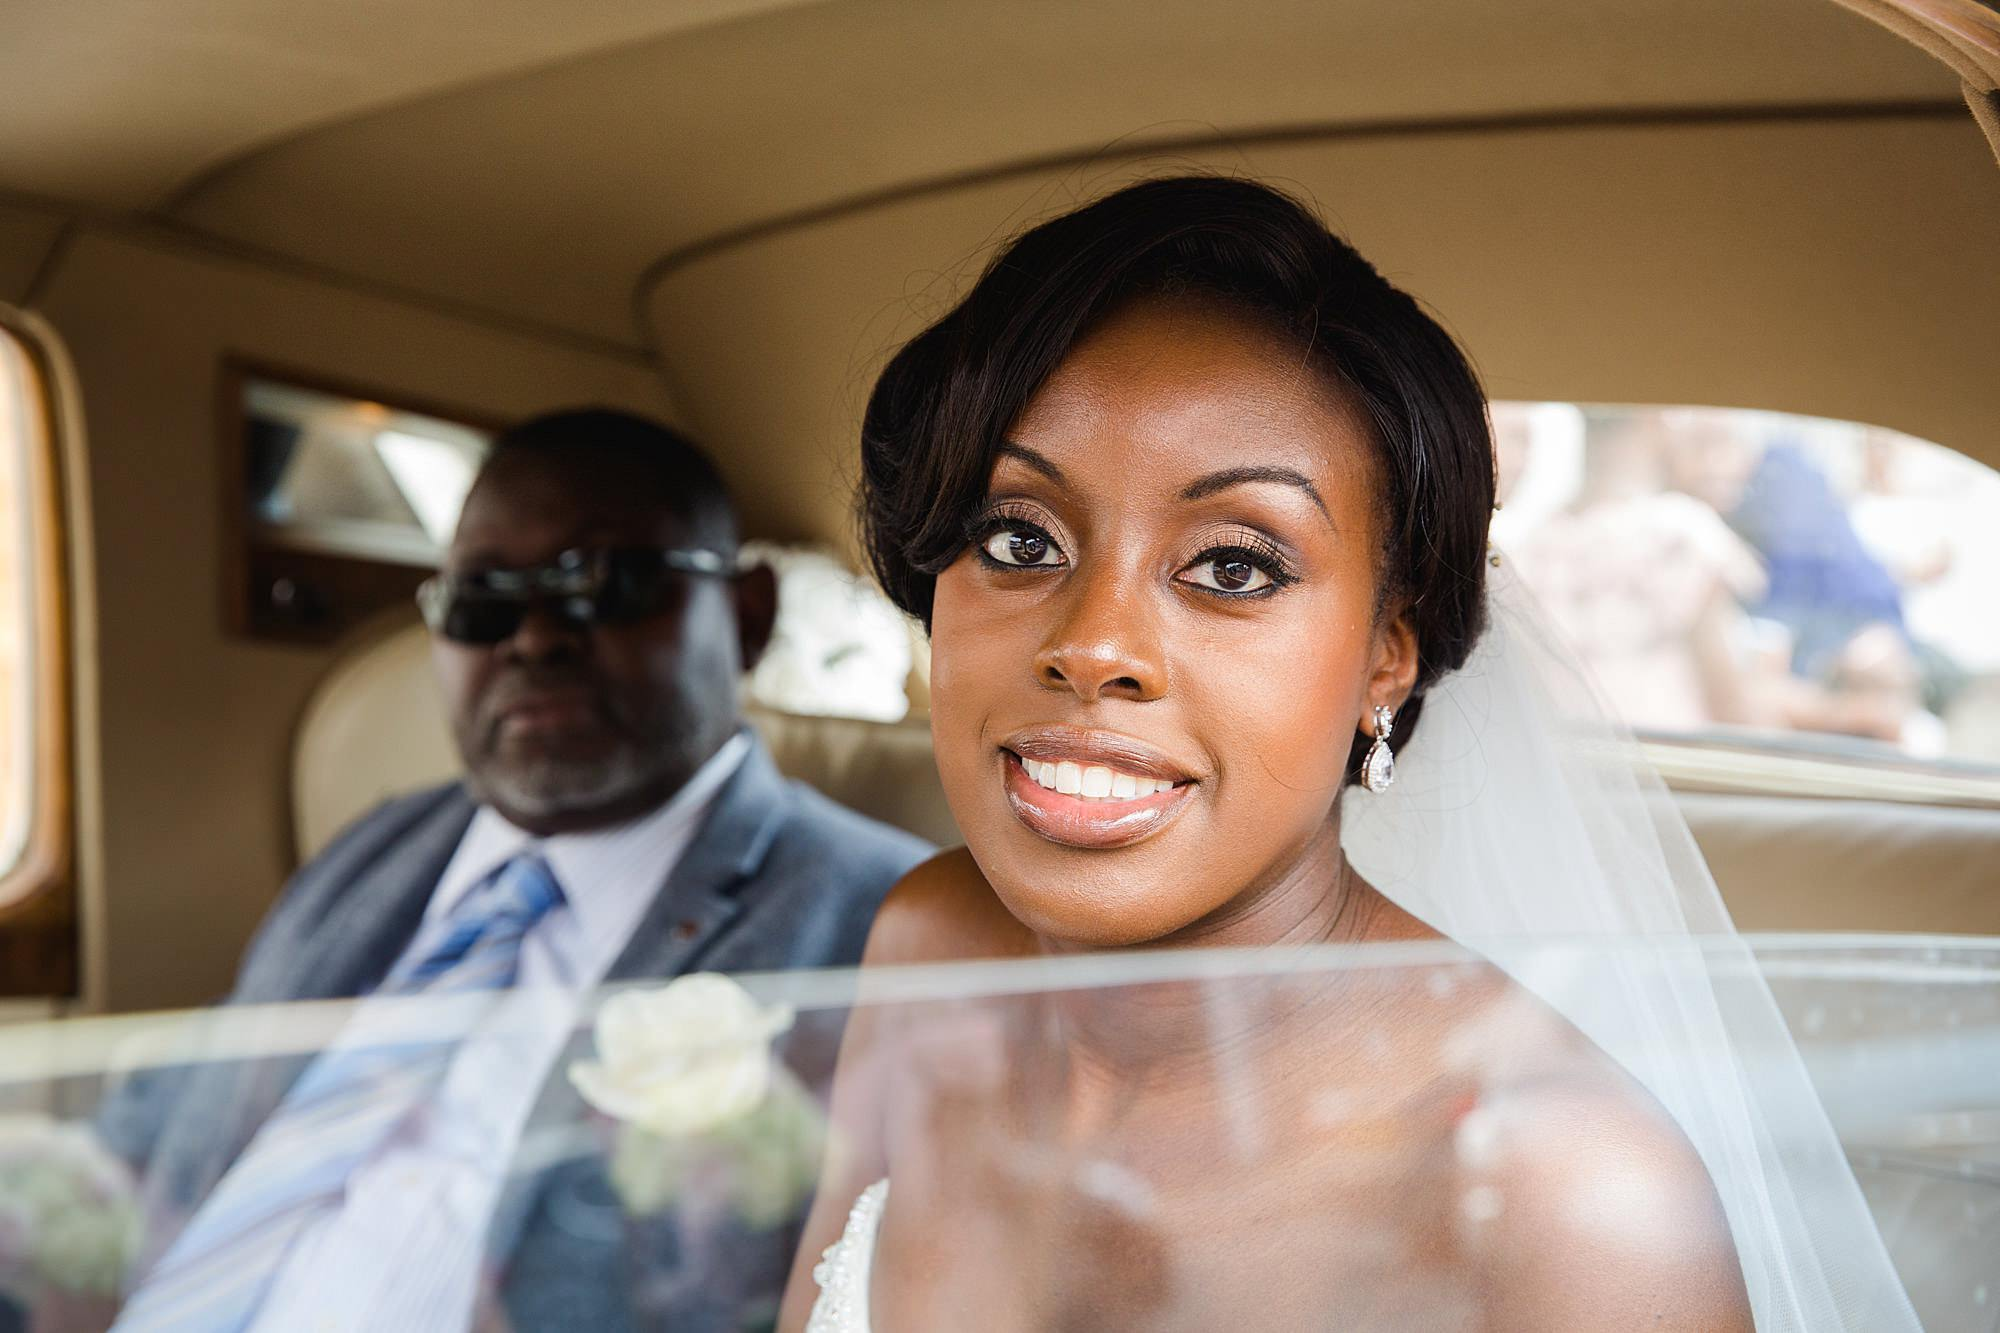 Bank of England Sports Centre wedding portrait of bride inside wedding car